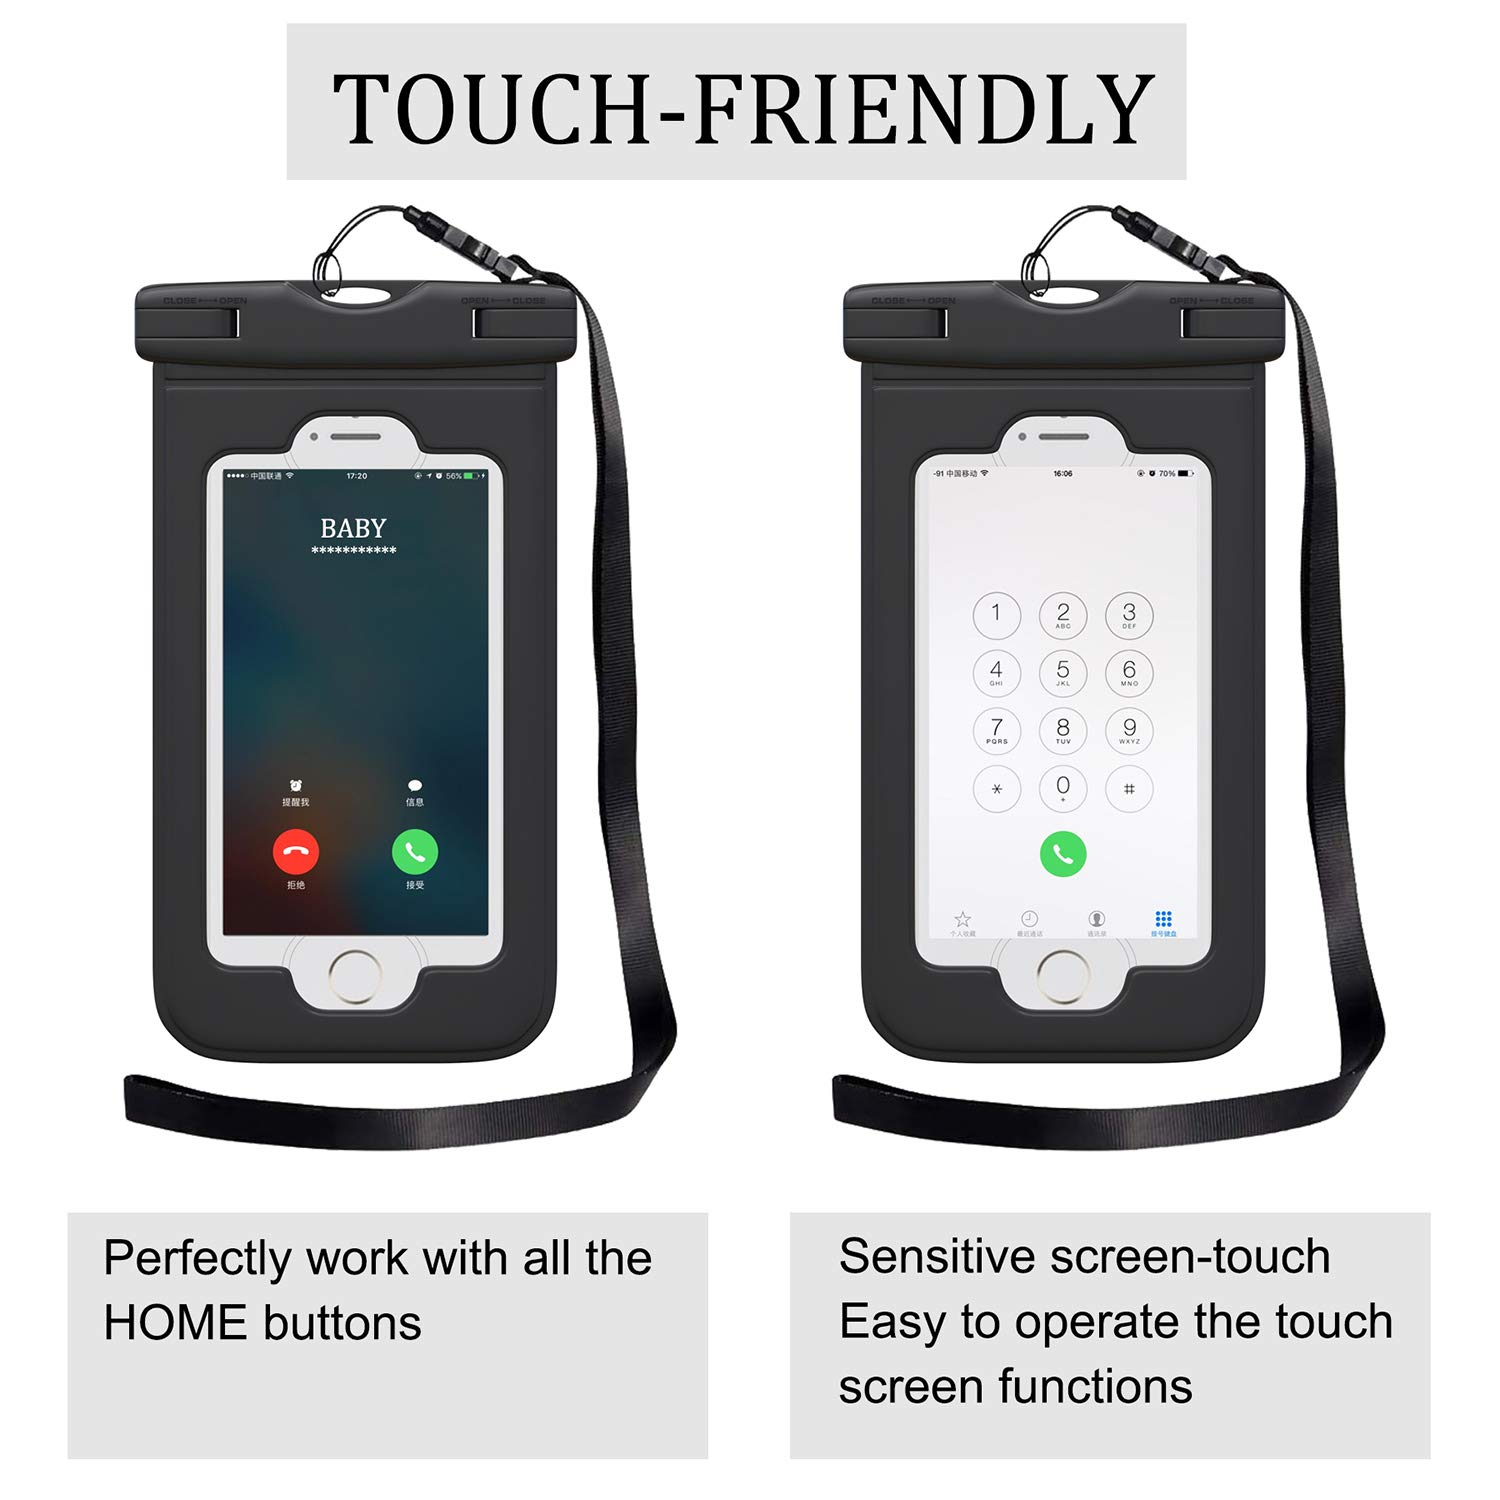 Darller Waterproof Fanny Pack Set Phone Pouch with Waist//Shoulder Strap Keep Your Phone and Valuables Dry and Safe